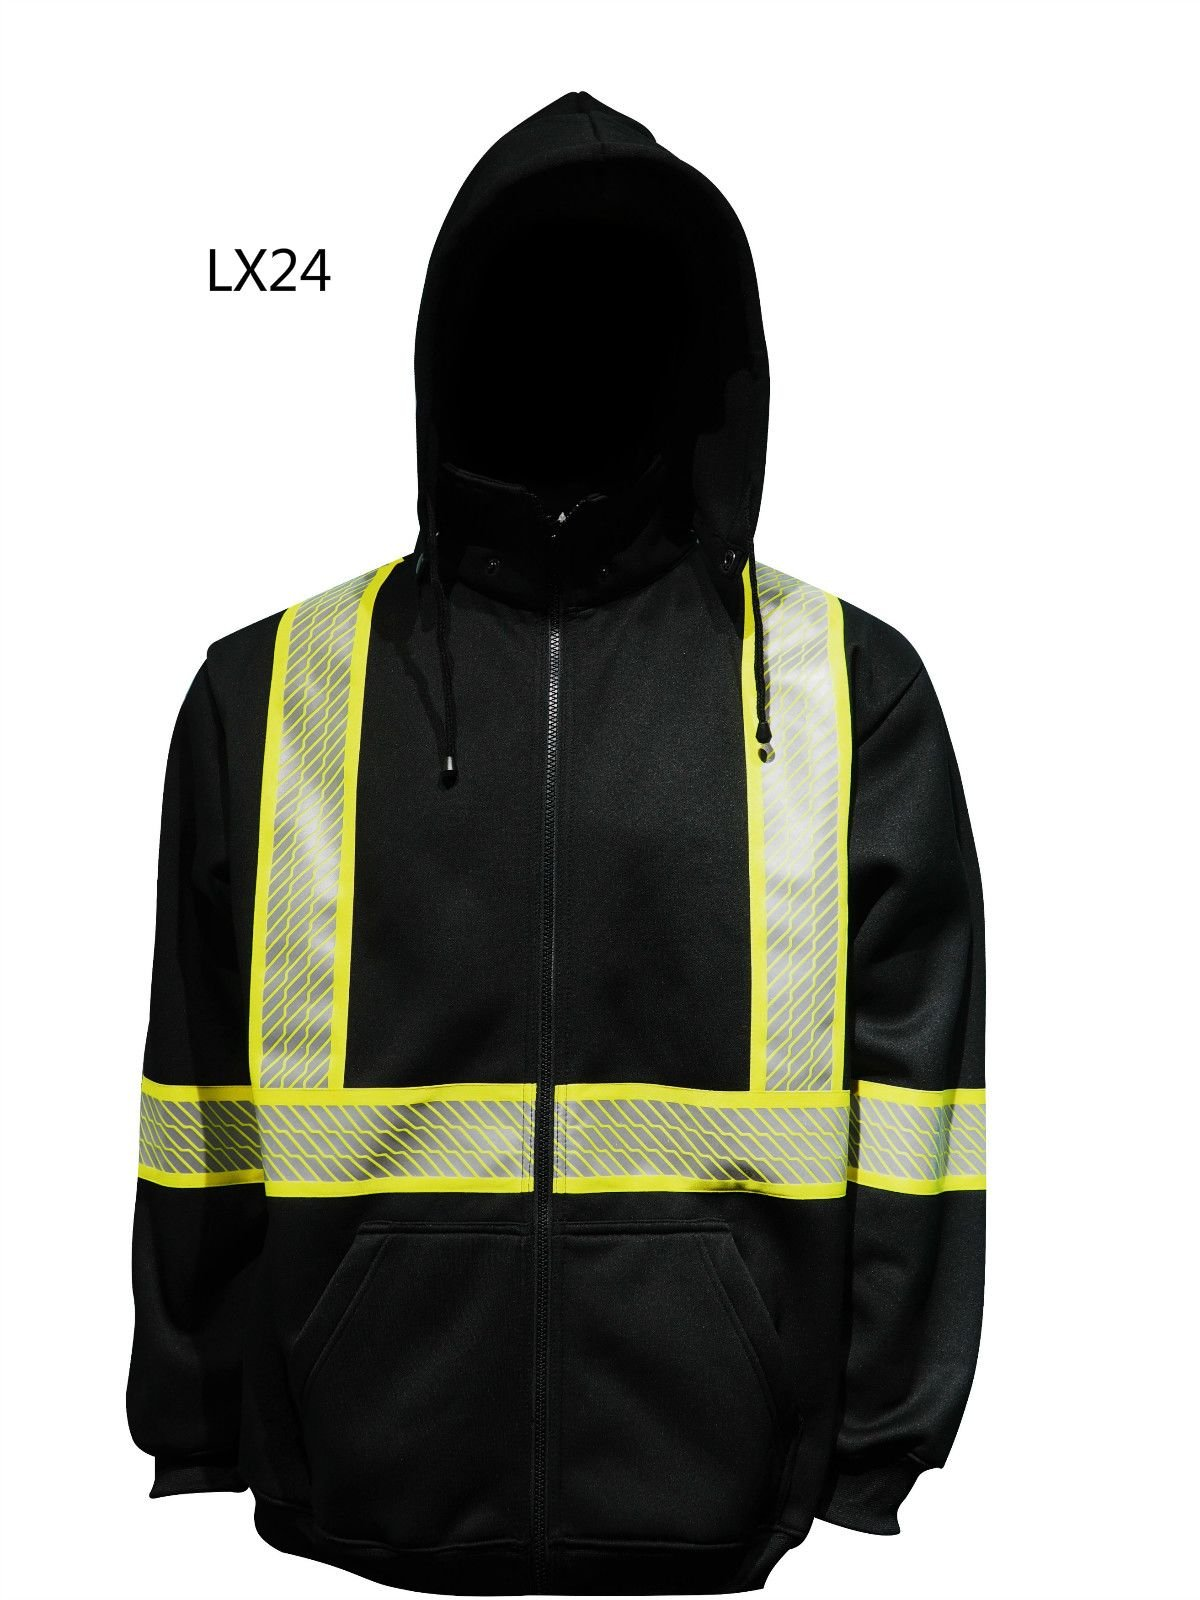 Mix-size Black HI-VIS Hooded Sweater SHIRTs Hoodie ZipFront Road Work HIGH VISIBILITY SIZE S-5XL